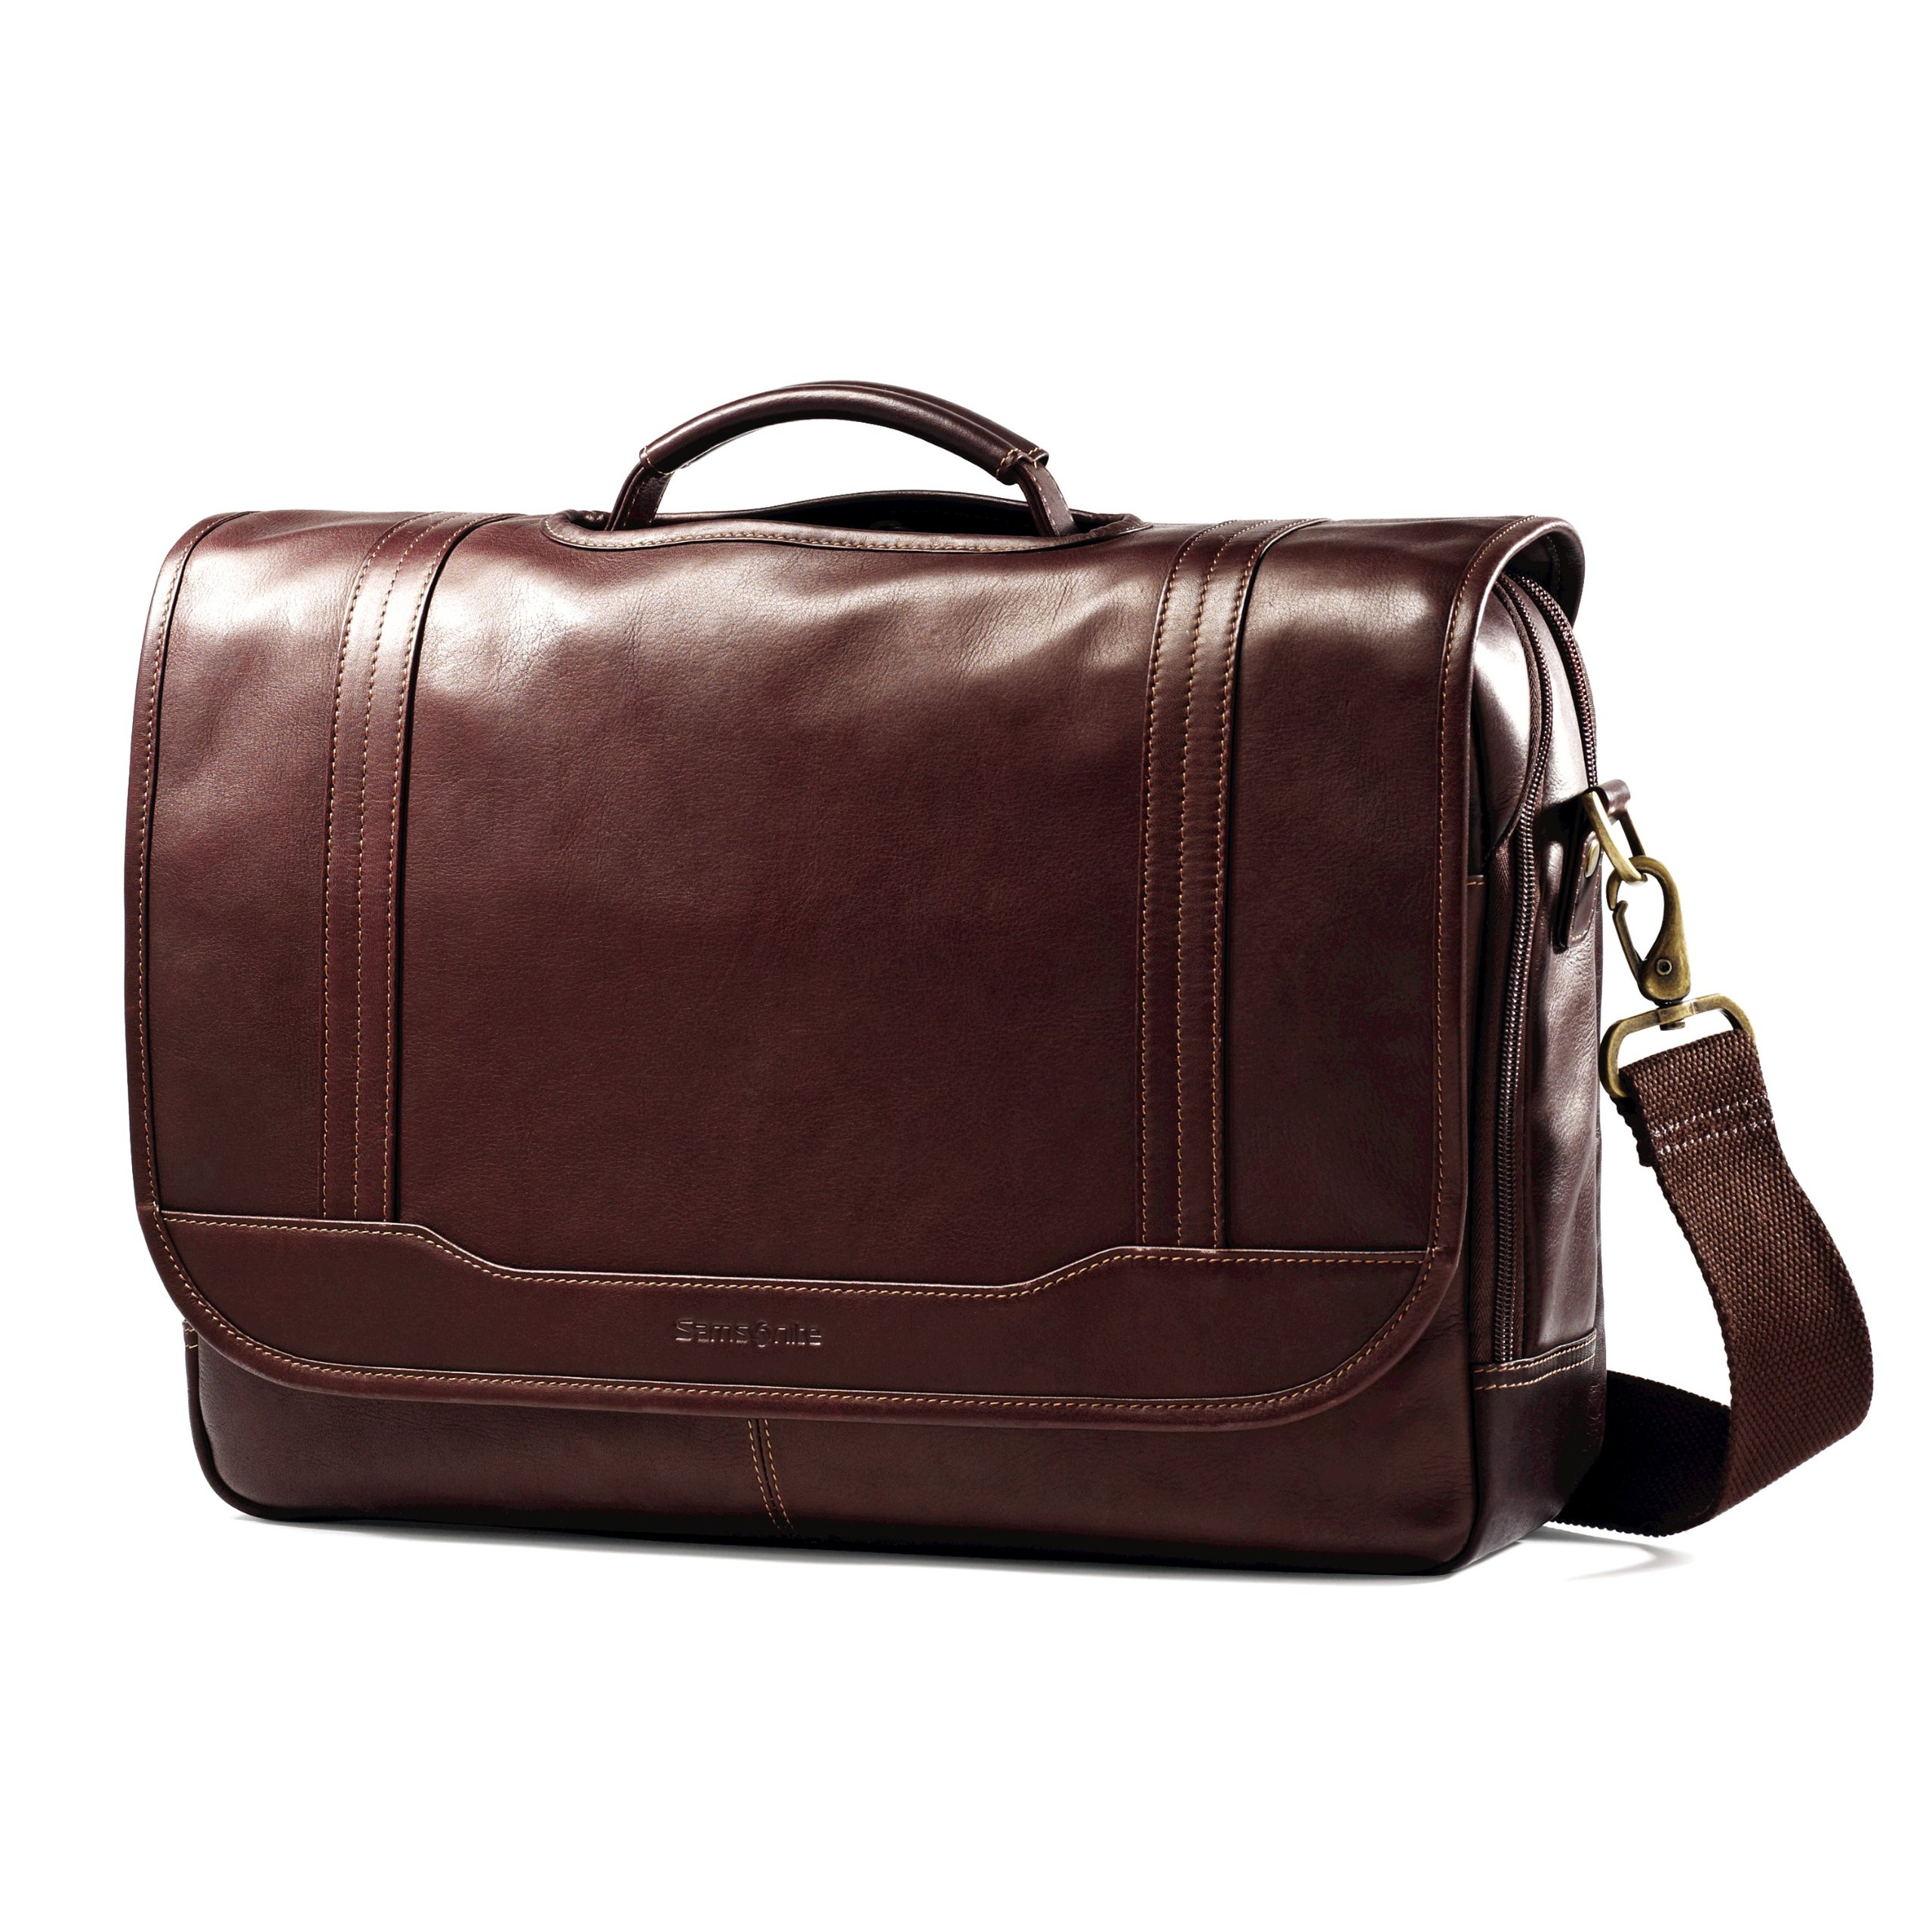 Samsonite Colombian Leather Flapover Briefcase, Brown, One Size by Samsonite